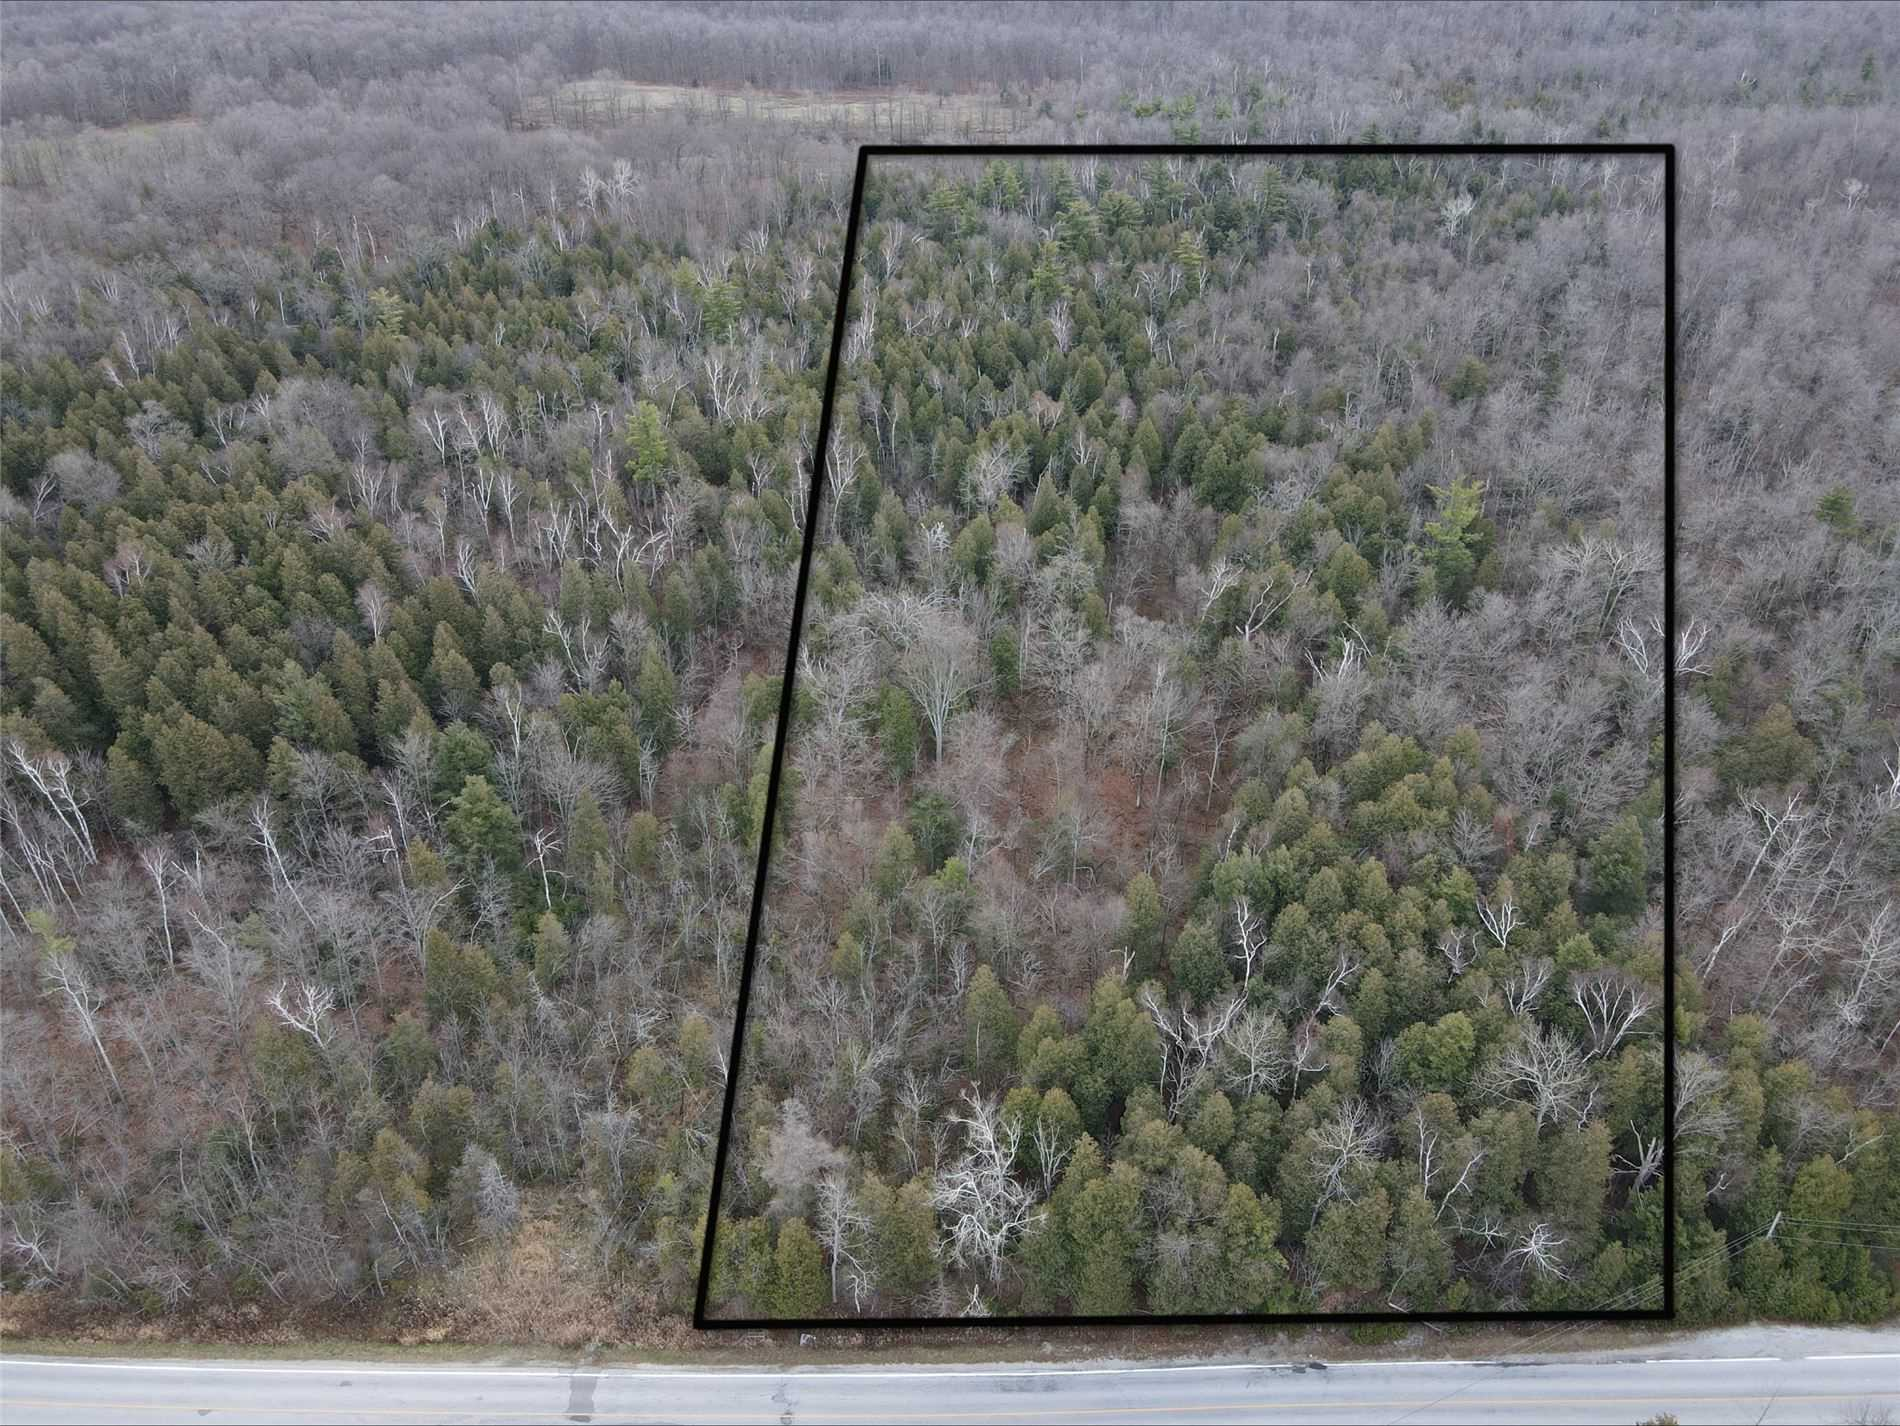 Vacant Land For Sale In Halton Hills , ,Vacant Land,For Sale,Con2Esq,Asin Hr24229